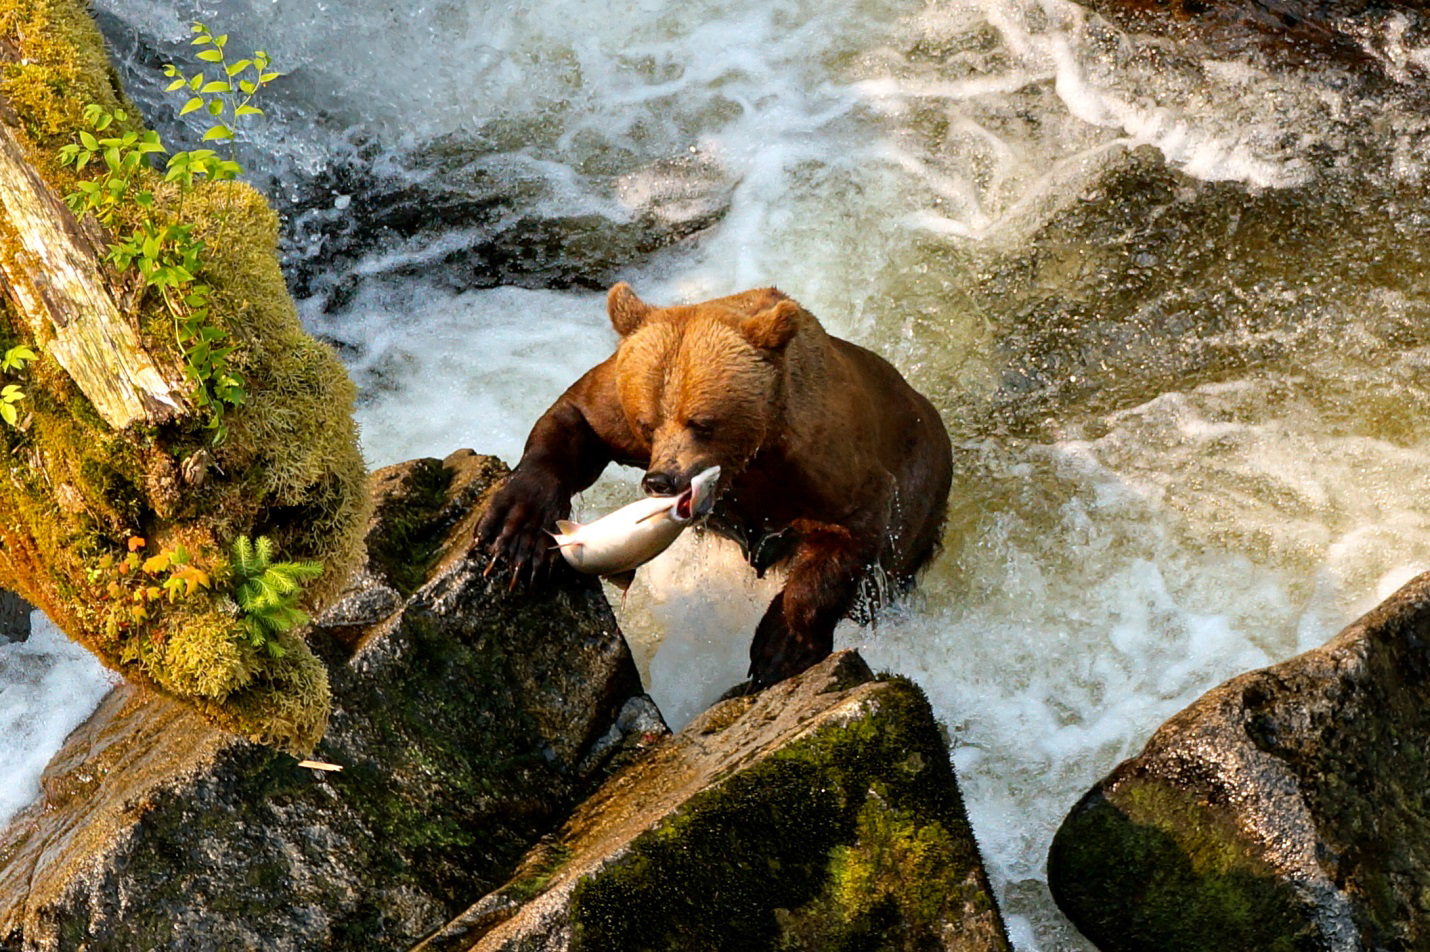 Anan Bear With Fish Climbing out of the water onto the rocks